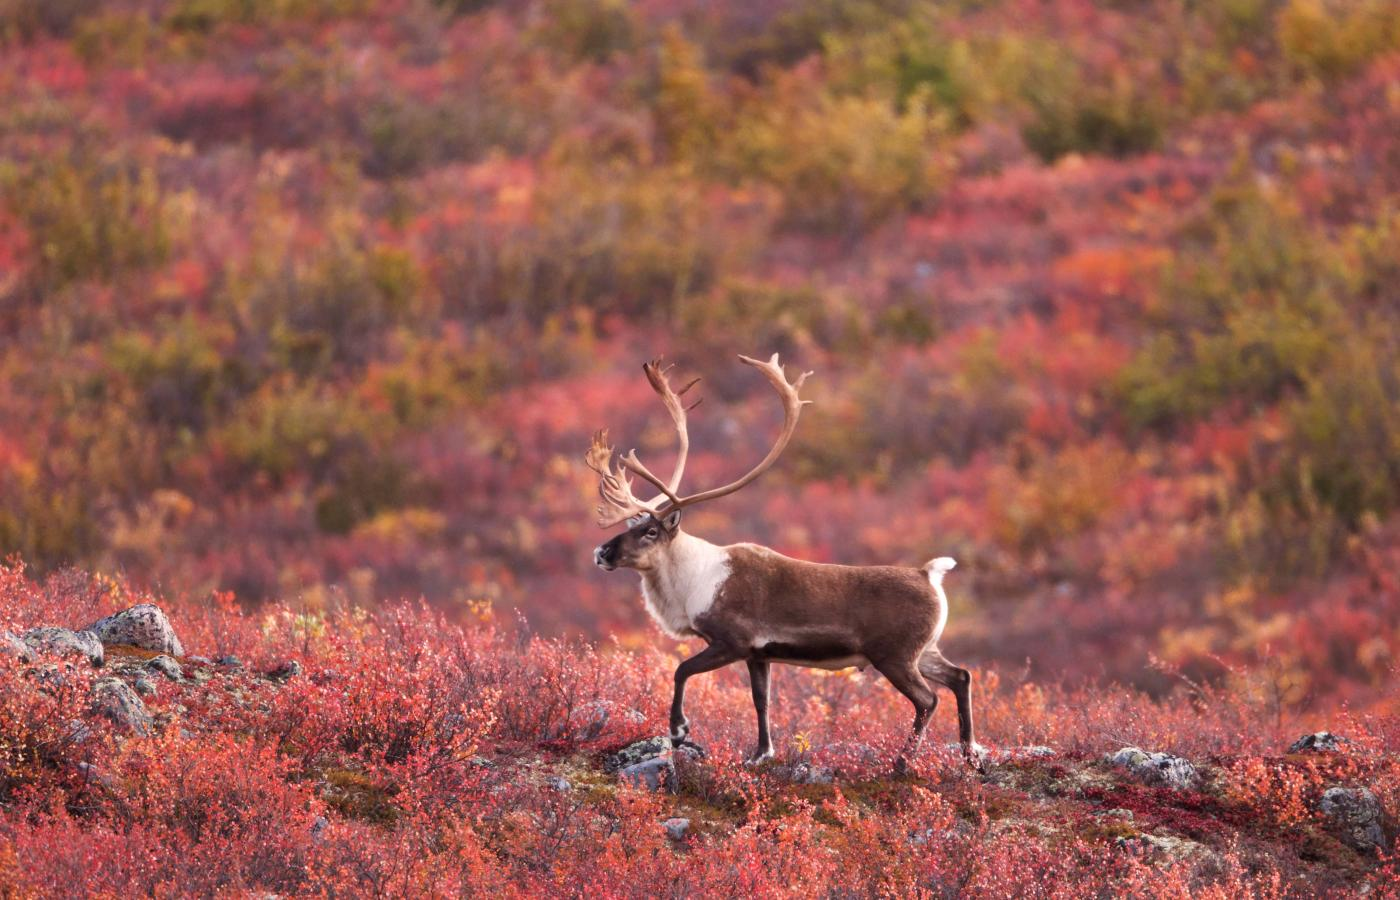 barrenland caribou on the tundra